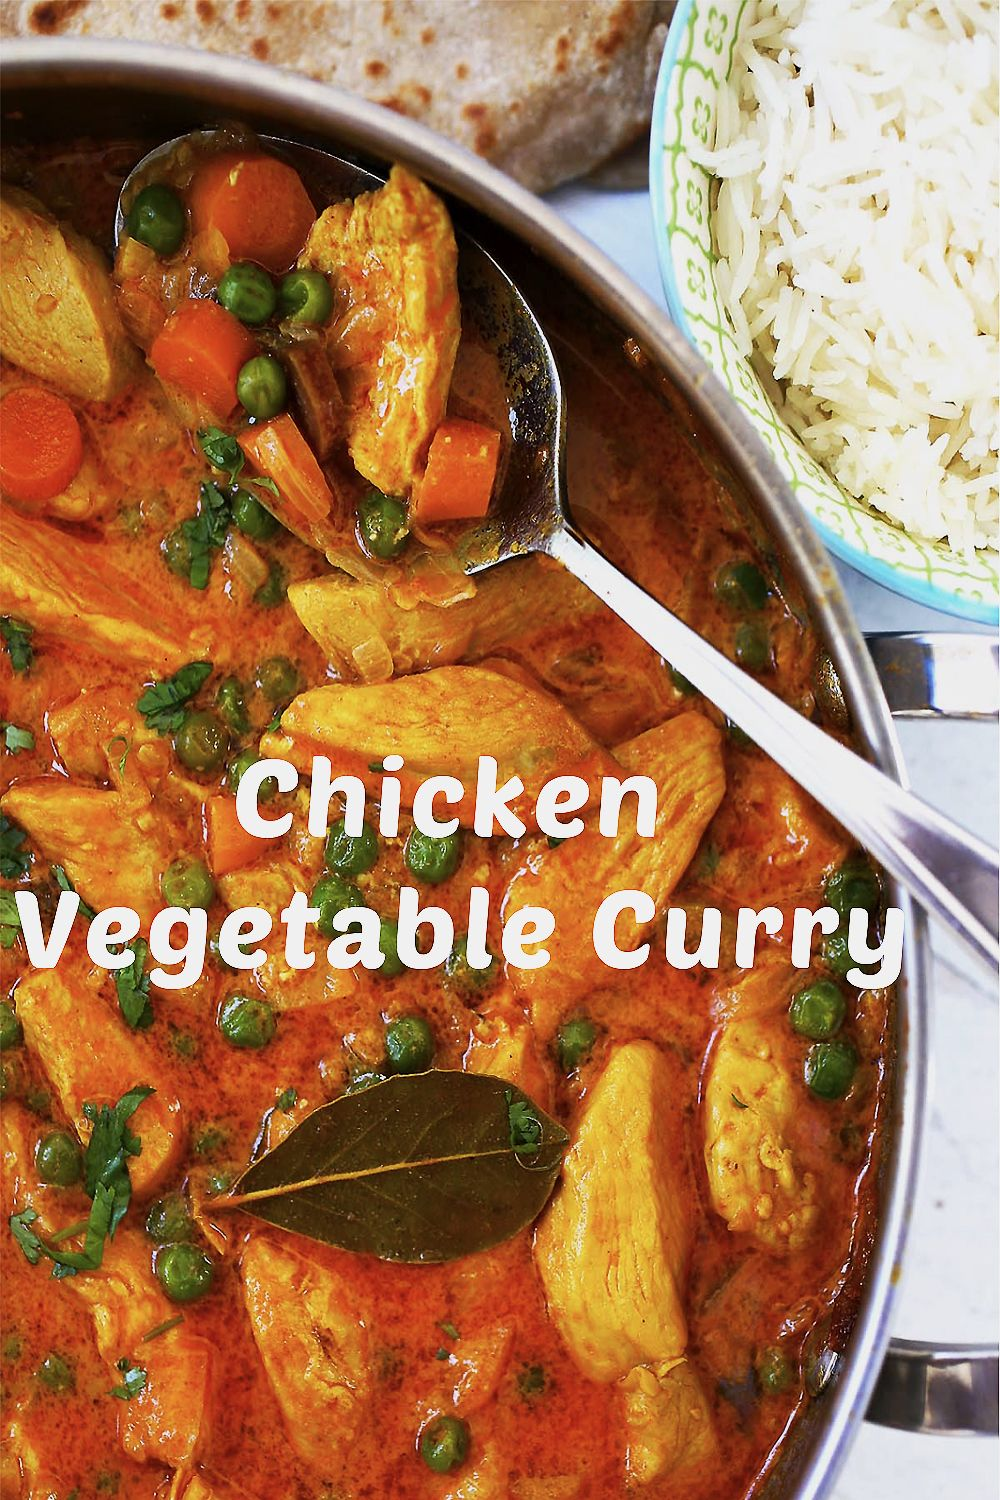 Chicken Vegetable Curry Guss Cooks Recipe In 2020 Chicken Vegetable Curry Vegetable Curry Recipes Vegetable Curry